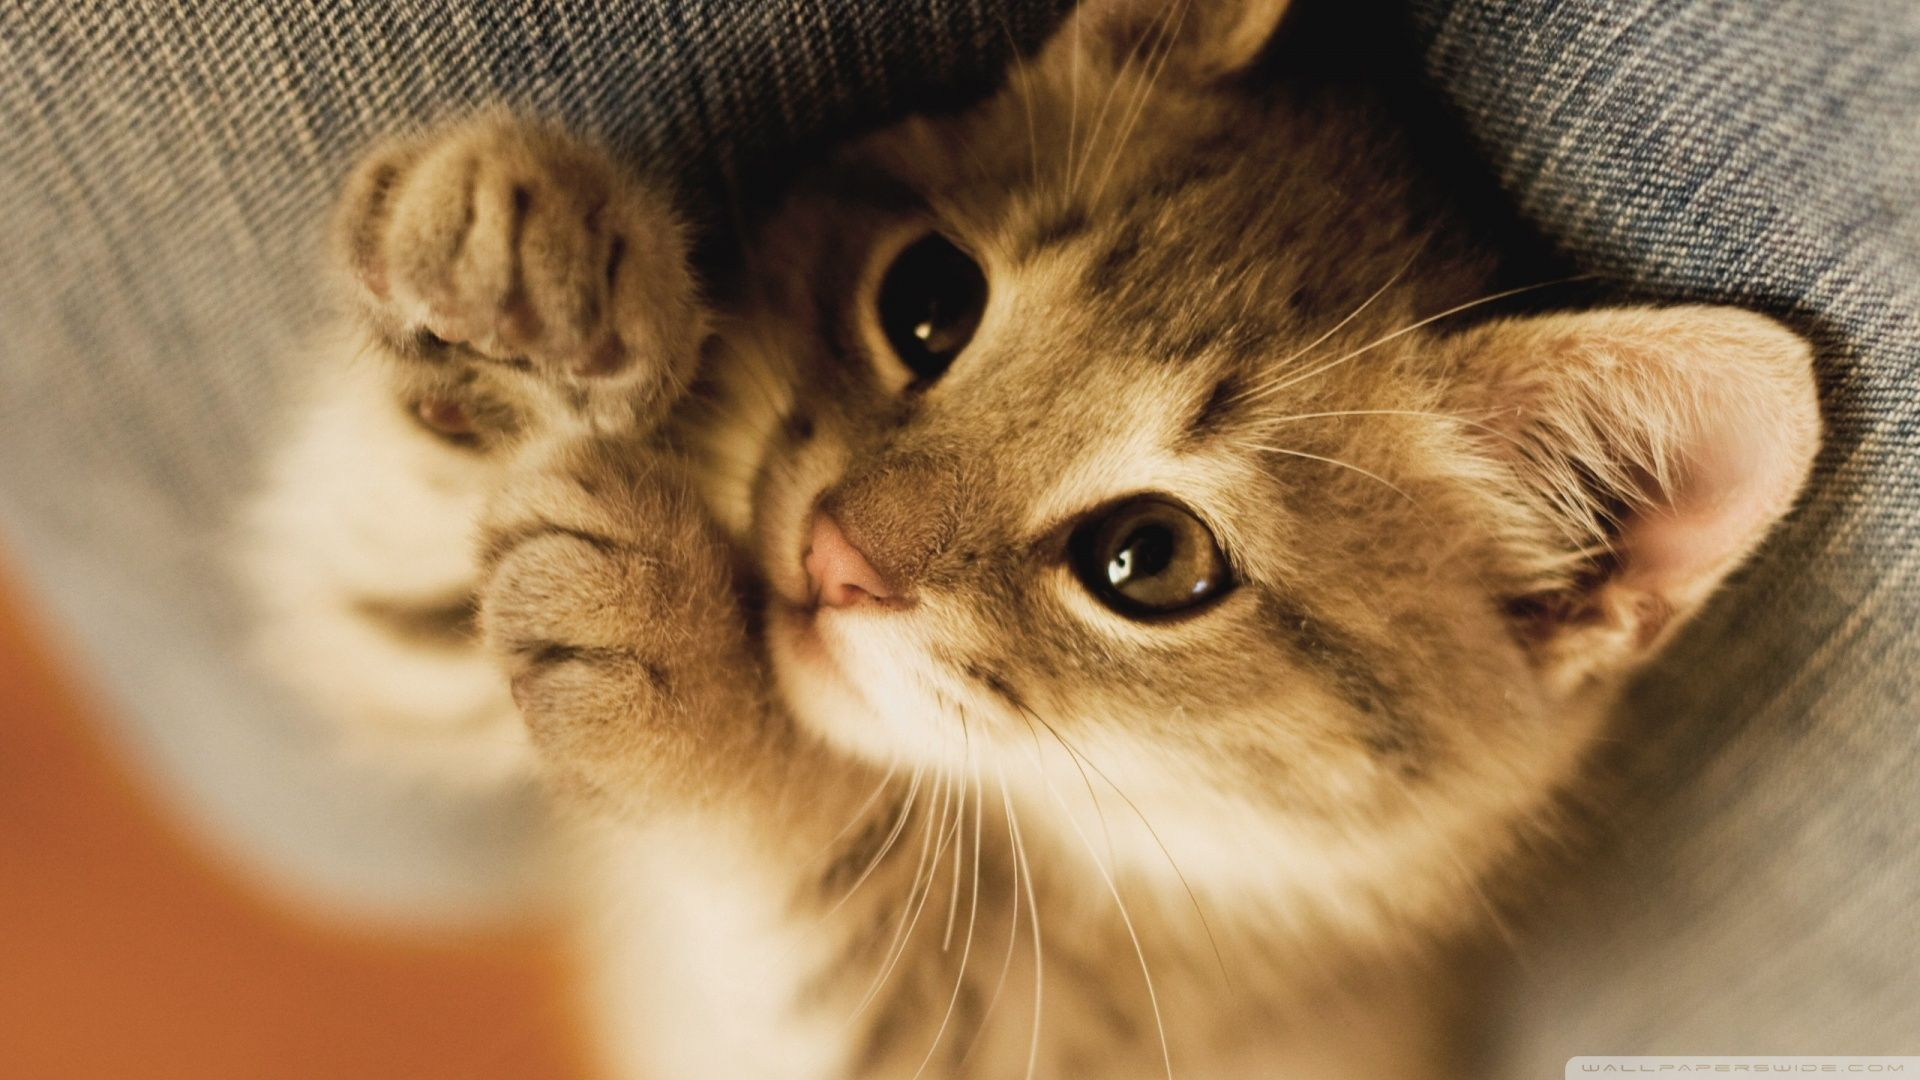 Pin by amelia cody on dance life pinterest kittens cute cats